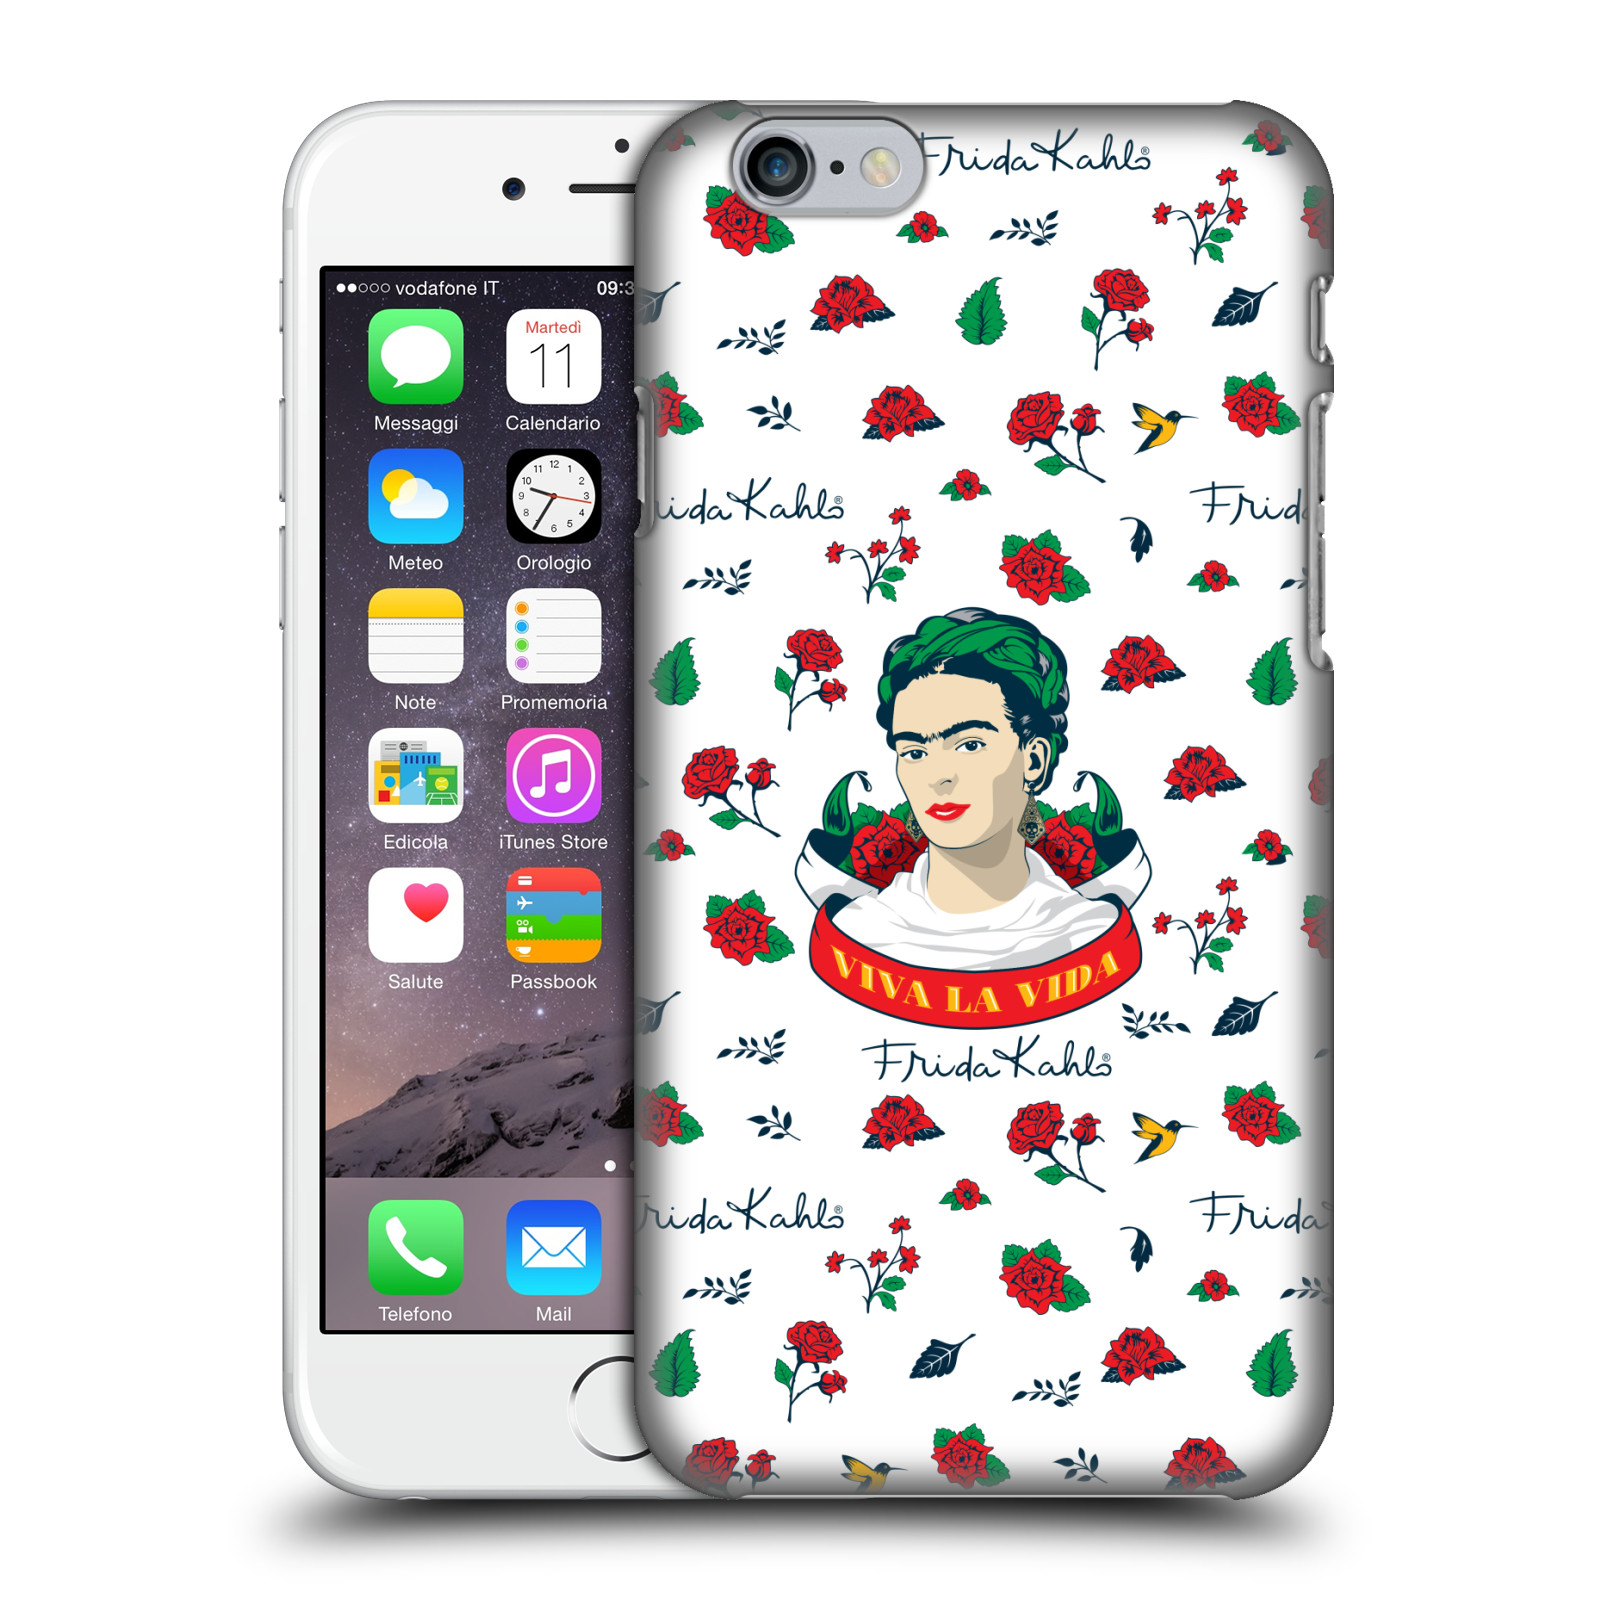 Frida Kahlo Icons-Rose Patterns